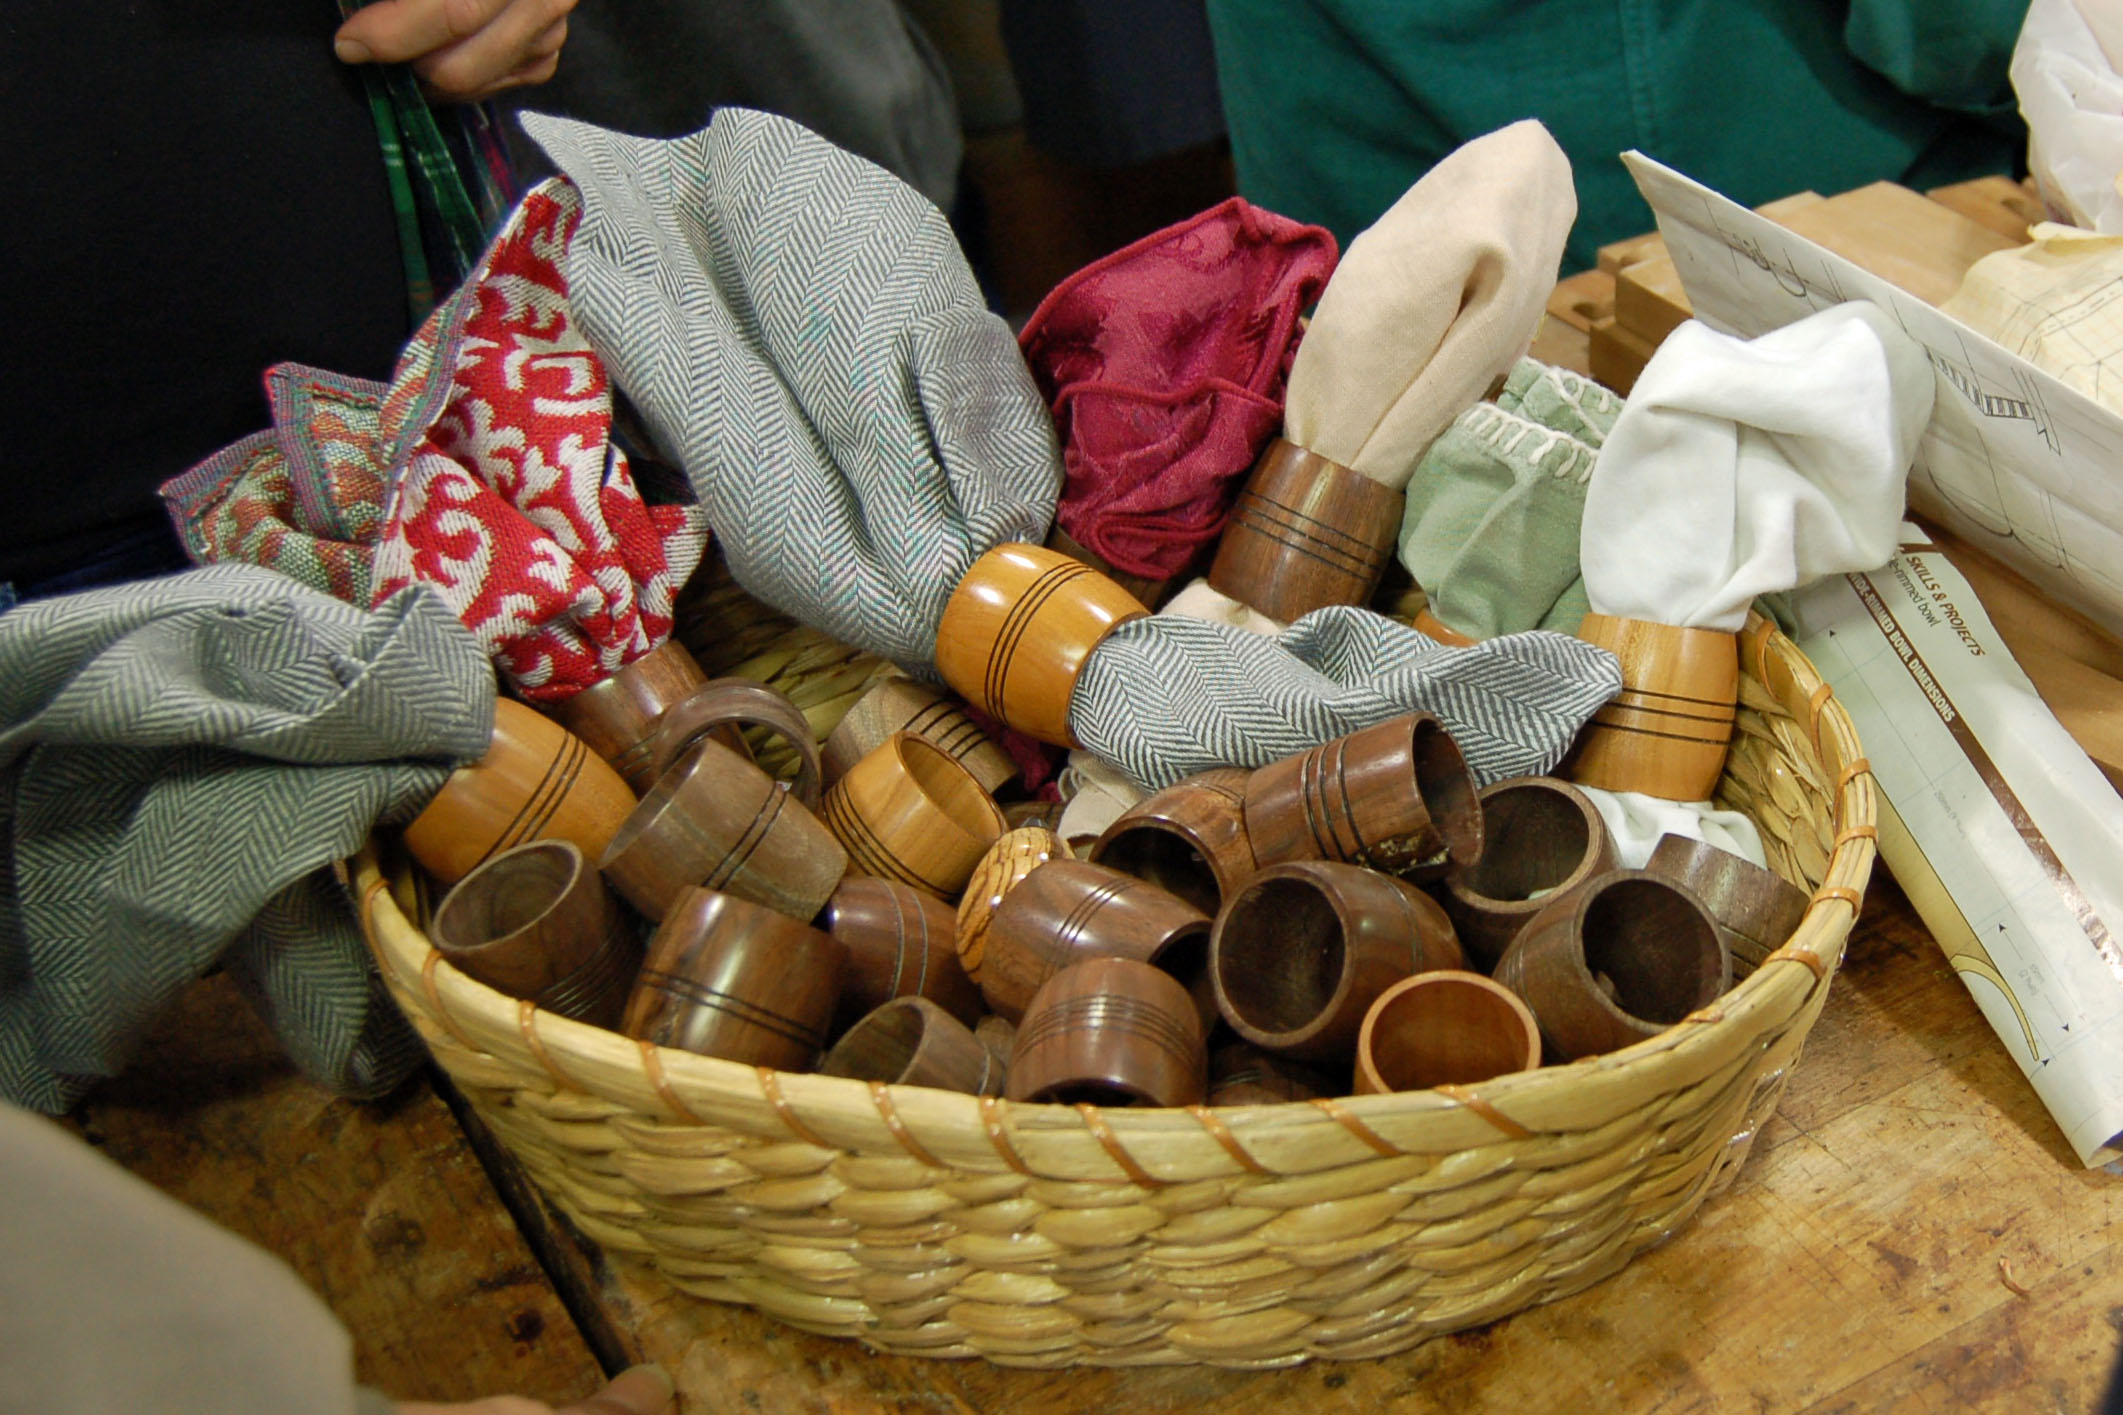 Here are some napkin rings some of Ed's young students turned.